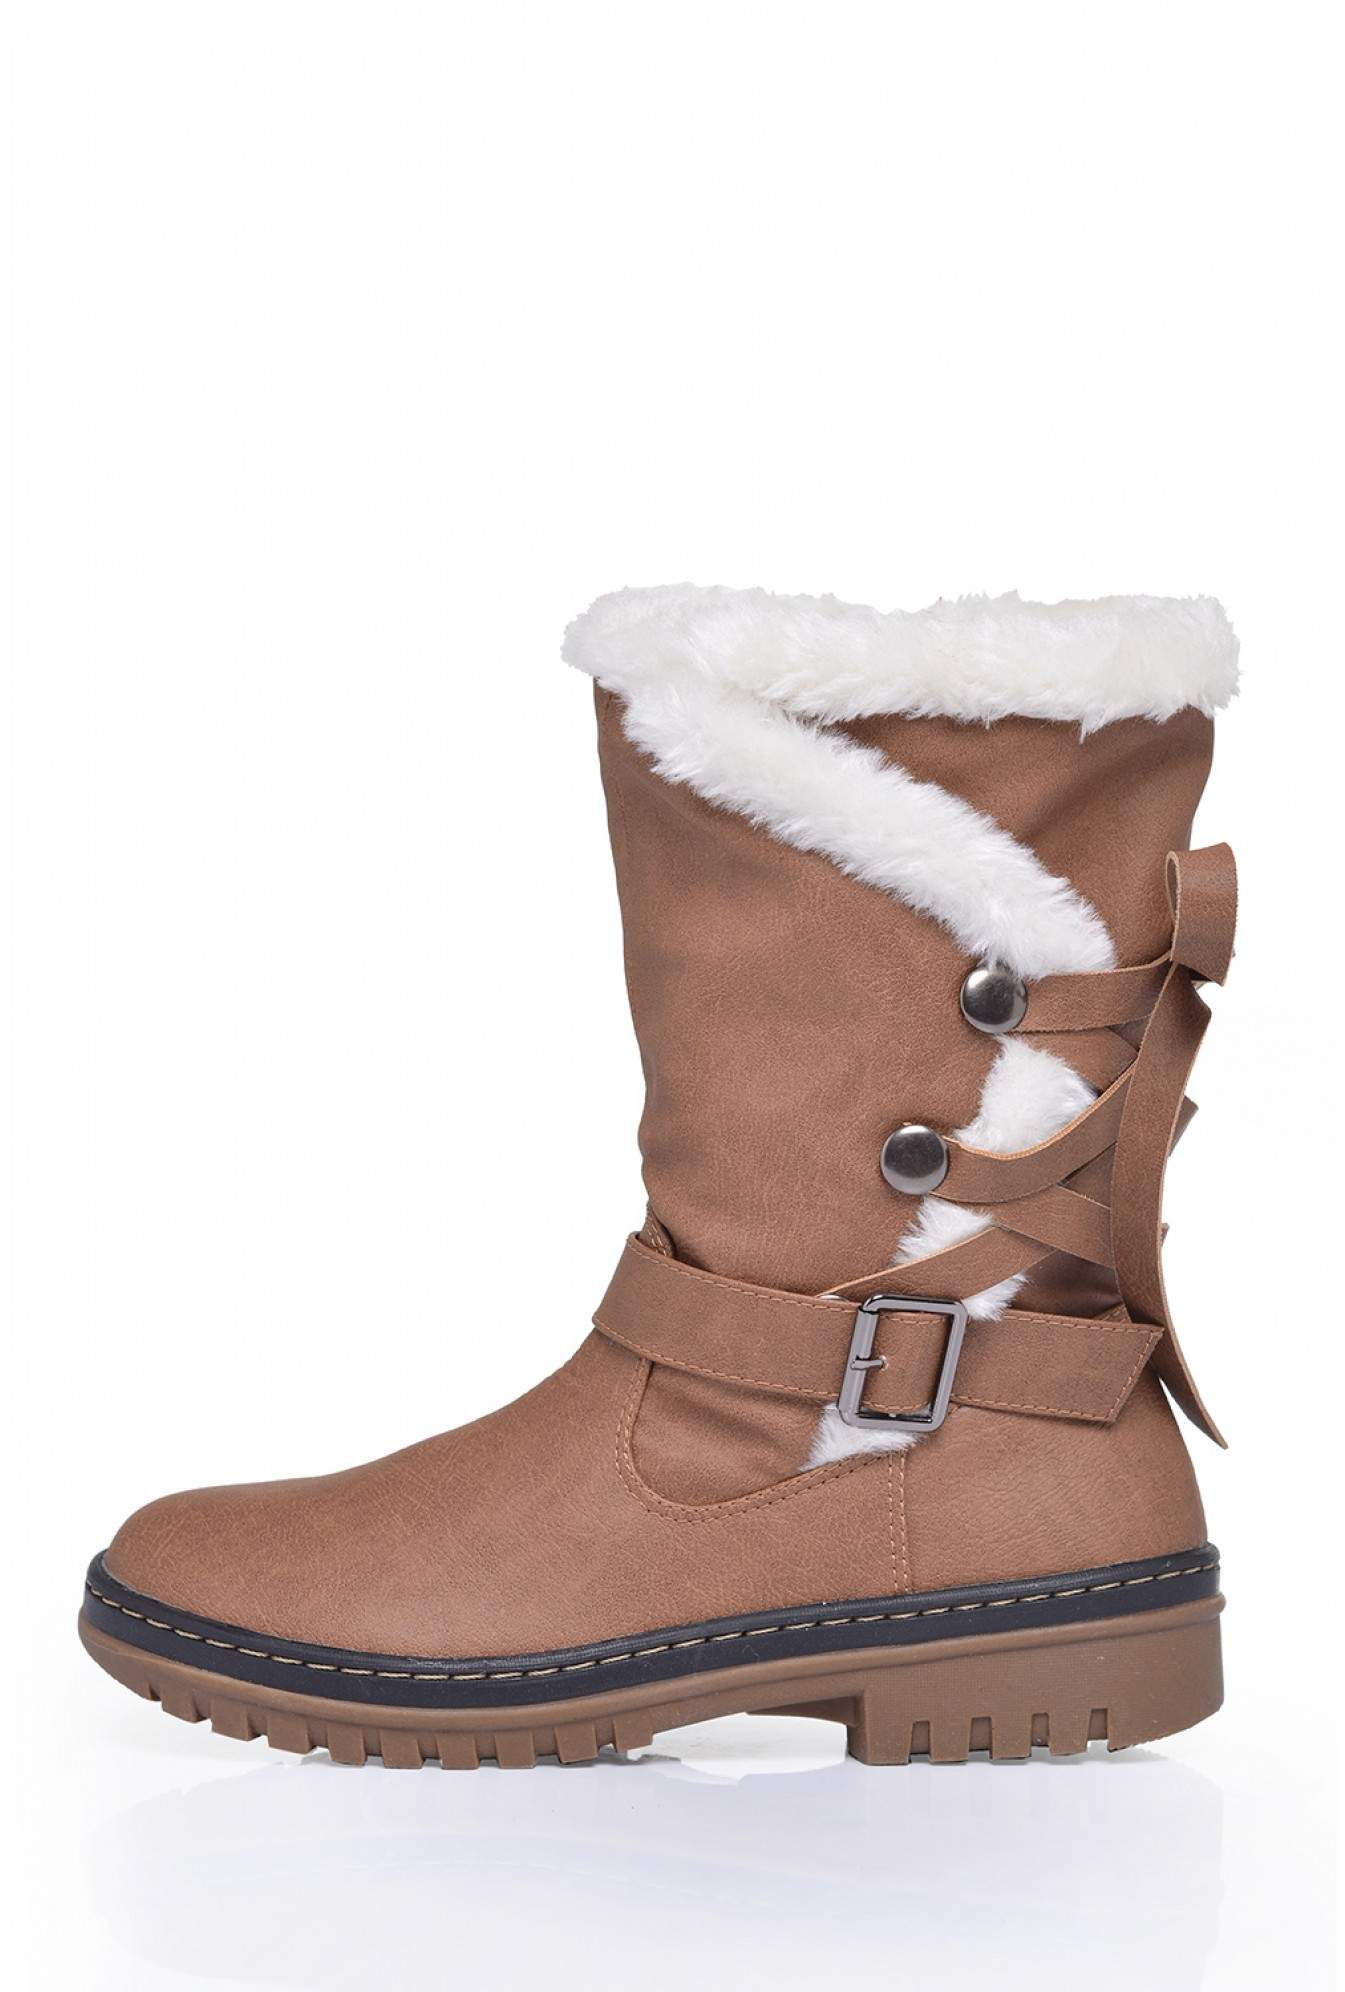 ac957069acf31 No Doubt Lizzy Fur Trim Ankle Boots in Tan | iCLOTHING